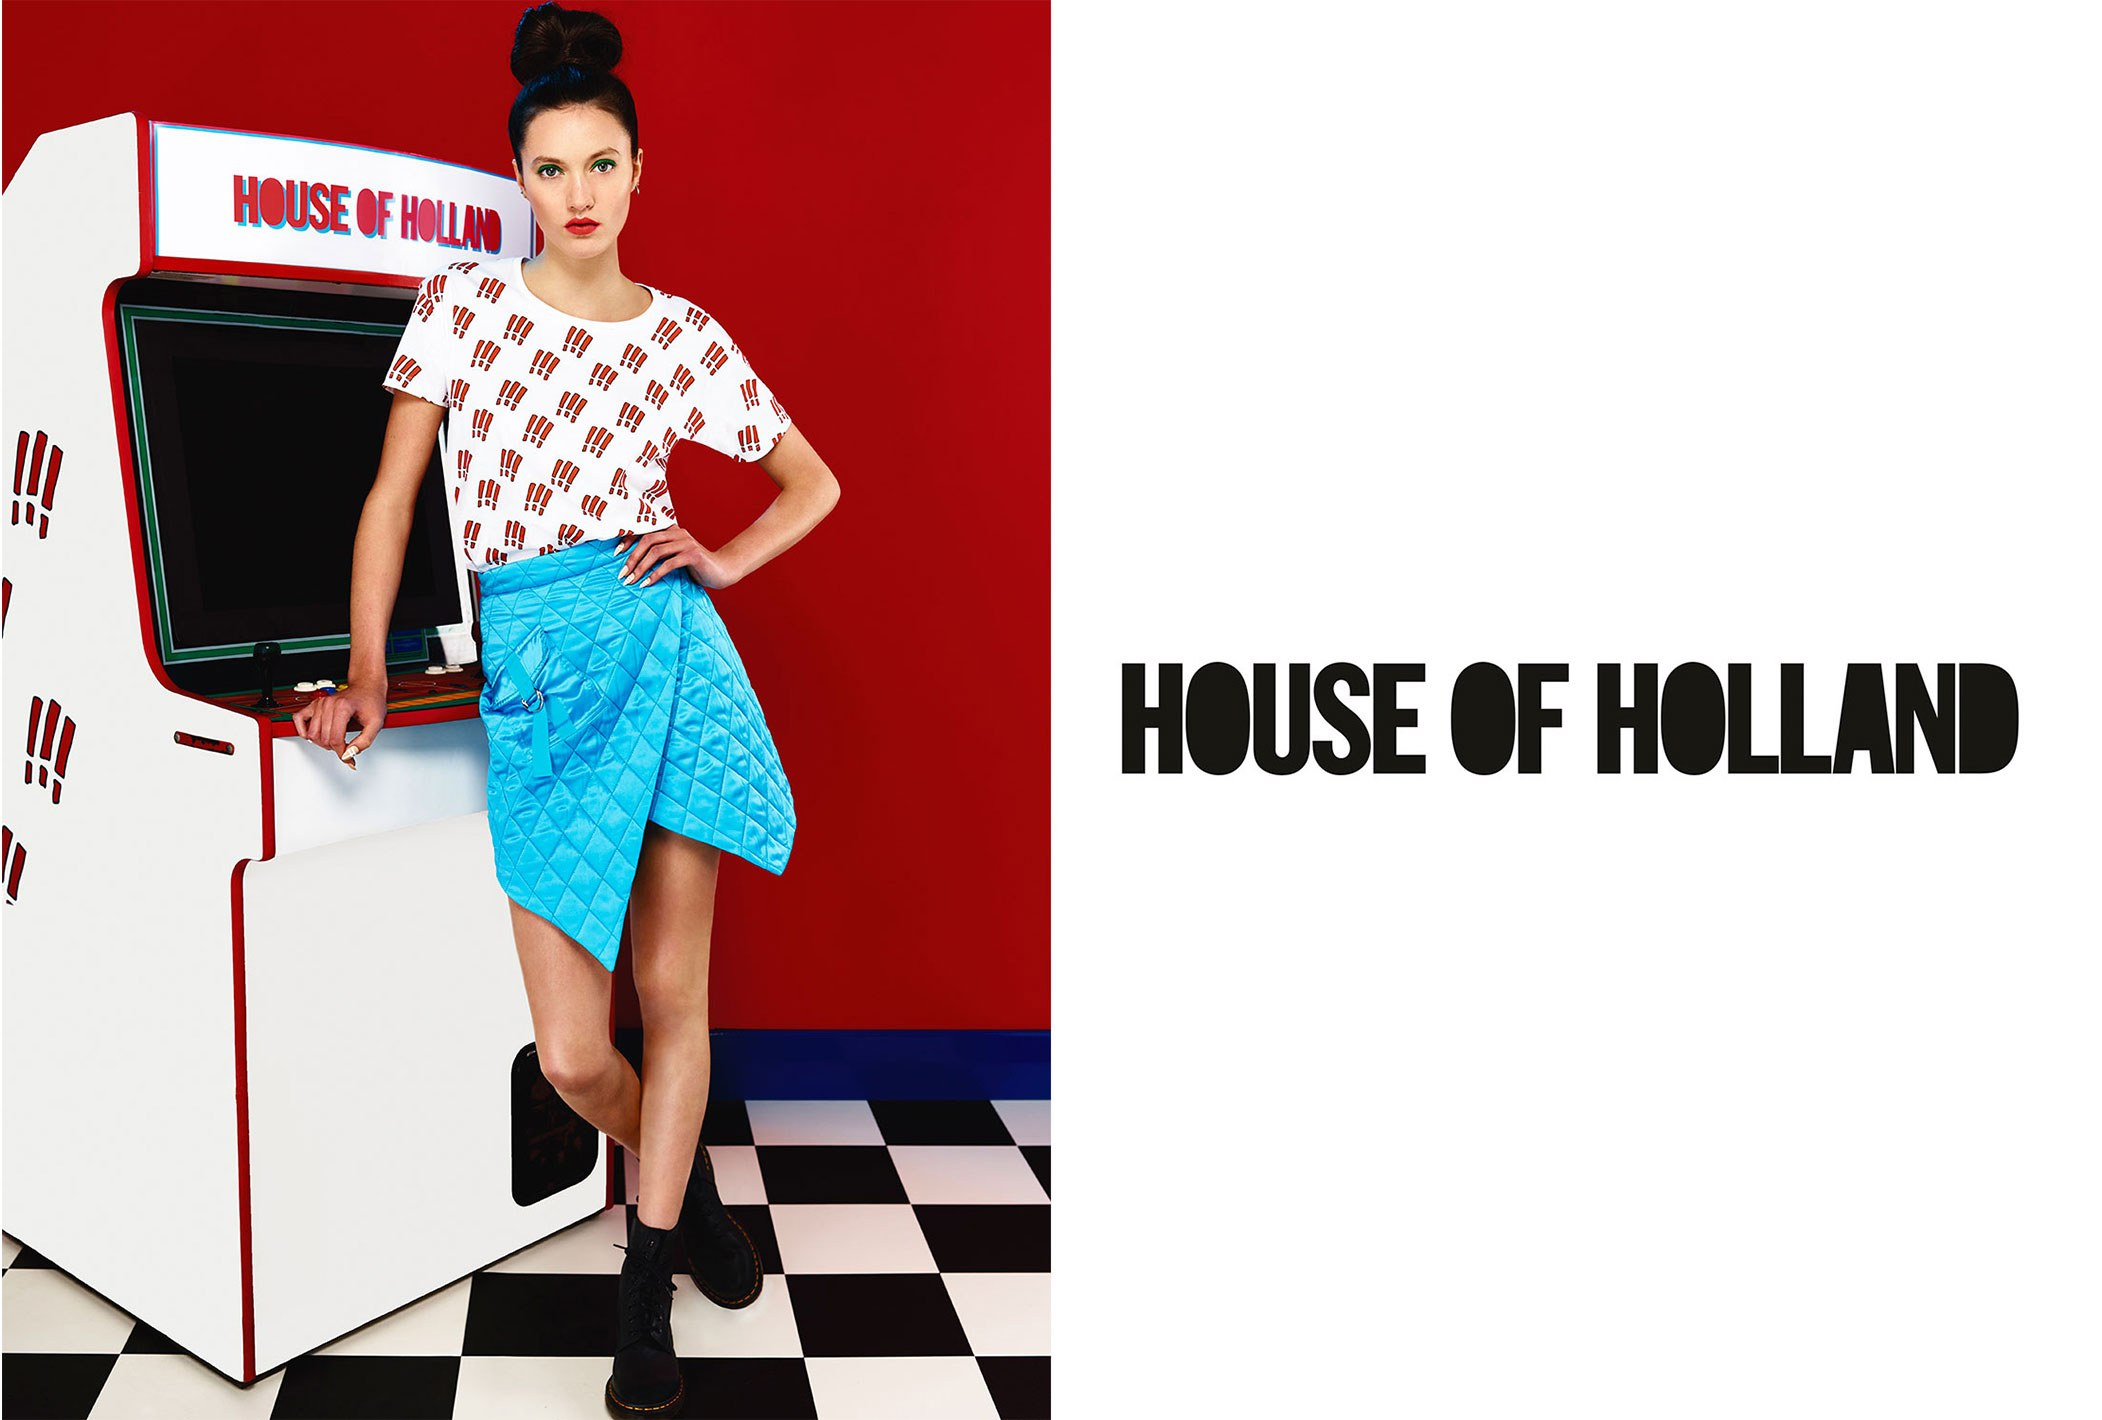 House Of Holland Matilda Lowther